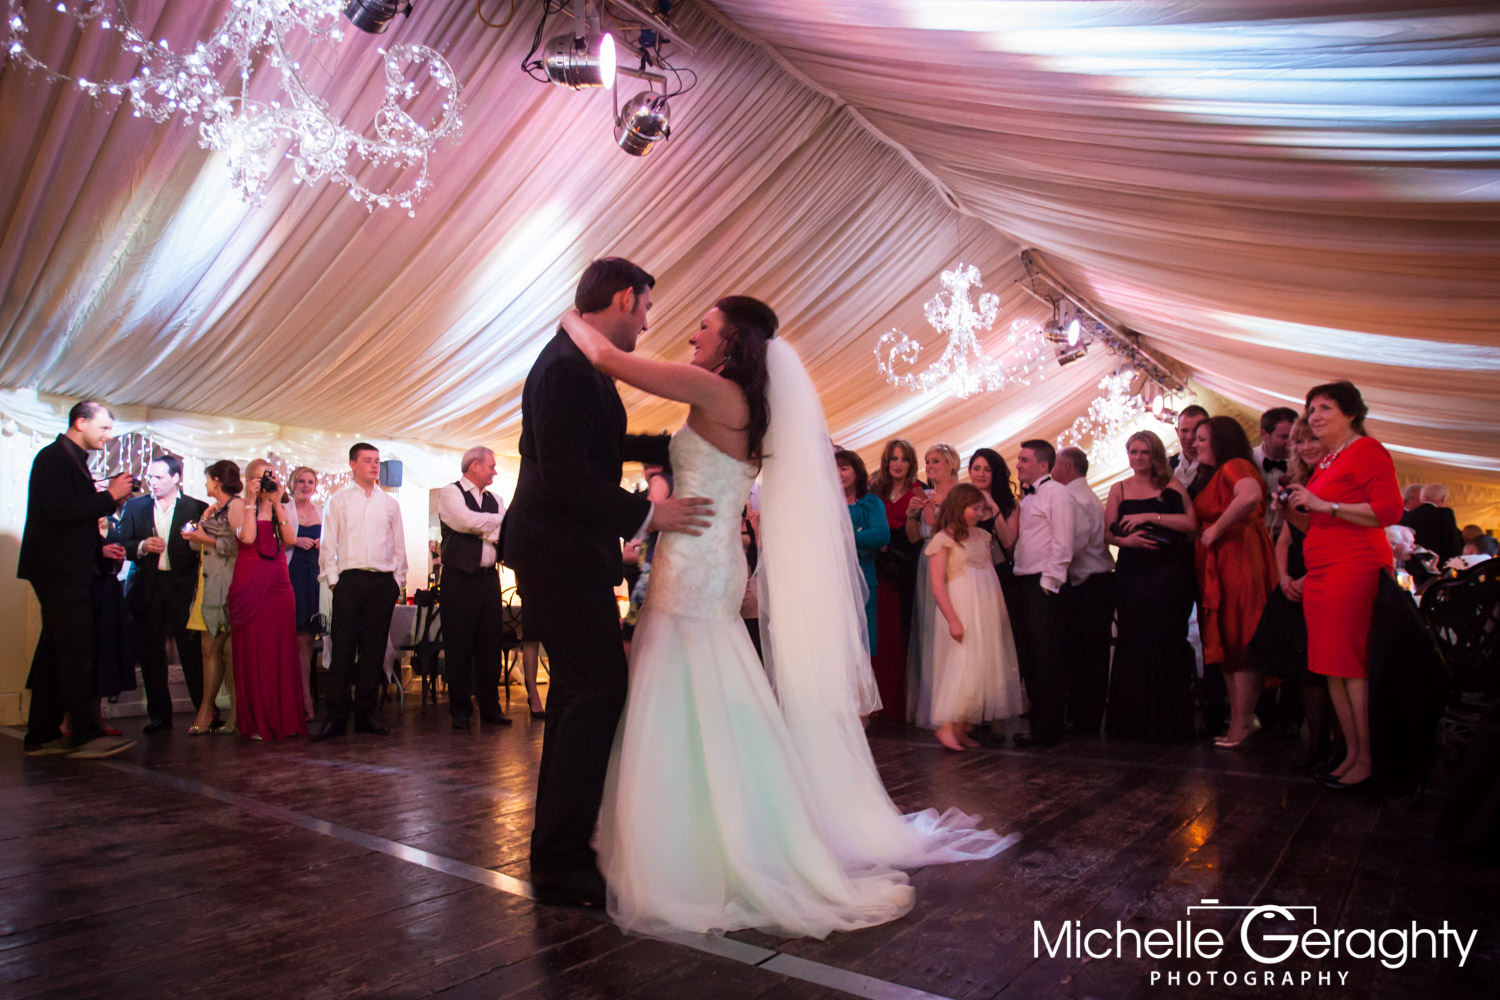 1929-Michelle Geraghty Photography_Mary & Connal-IMG_4648.jpg